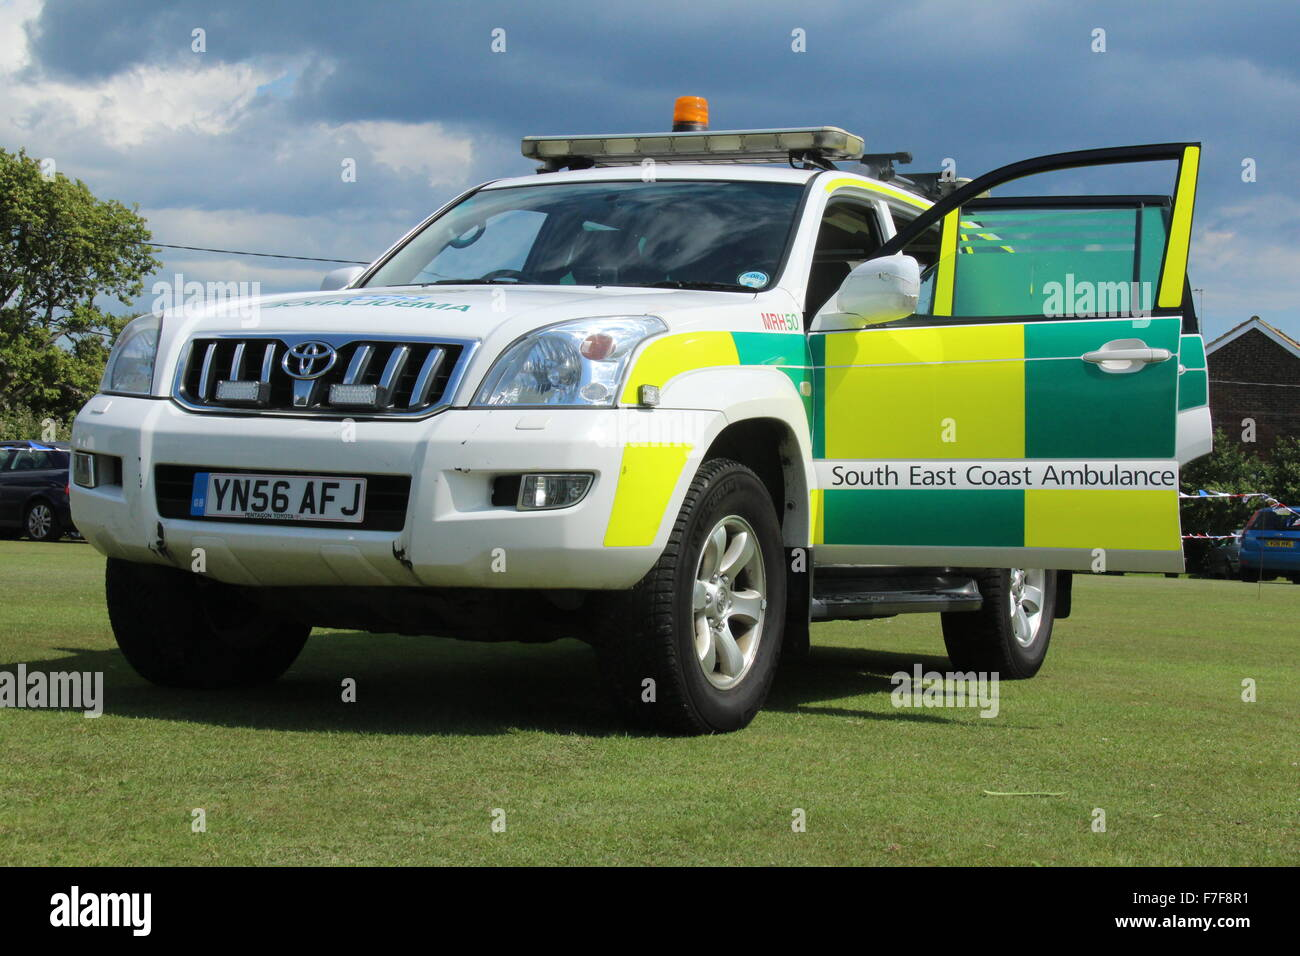 SOUTH EAST COAST AMBULANCE SERVICE NHS FOUNDATION TRUST PARAMEDIC EMERGENCY AMBULANCE VEHICLE - Stock Image